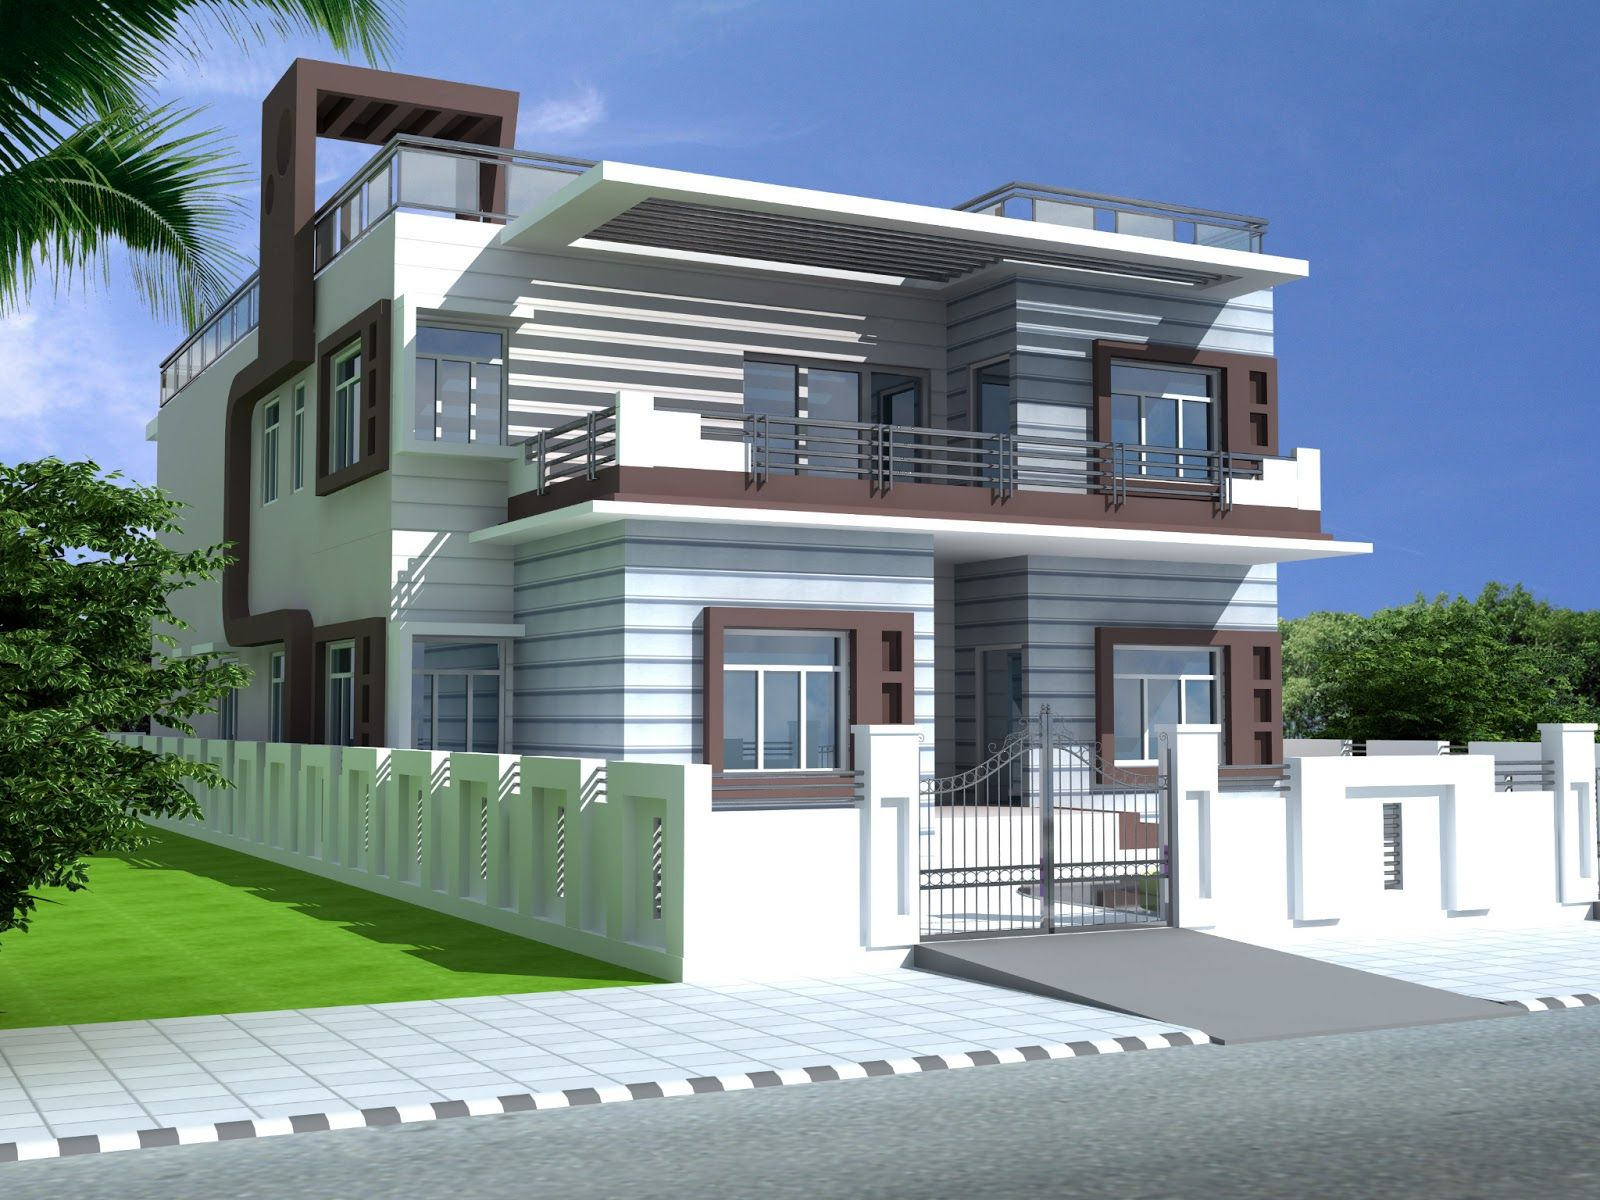 6 bedrooms duplex house design in 390m2 13m x 30m complete lyons affordable - Good duplex house plans ...